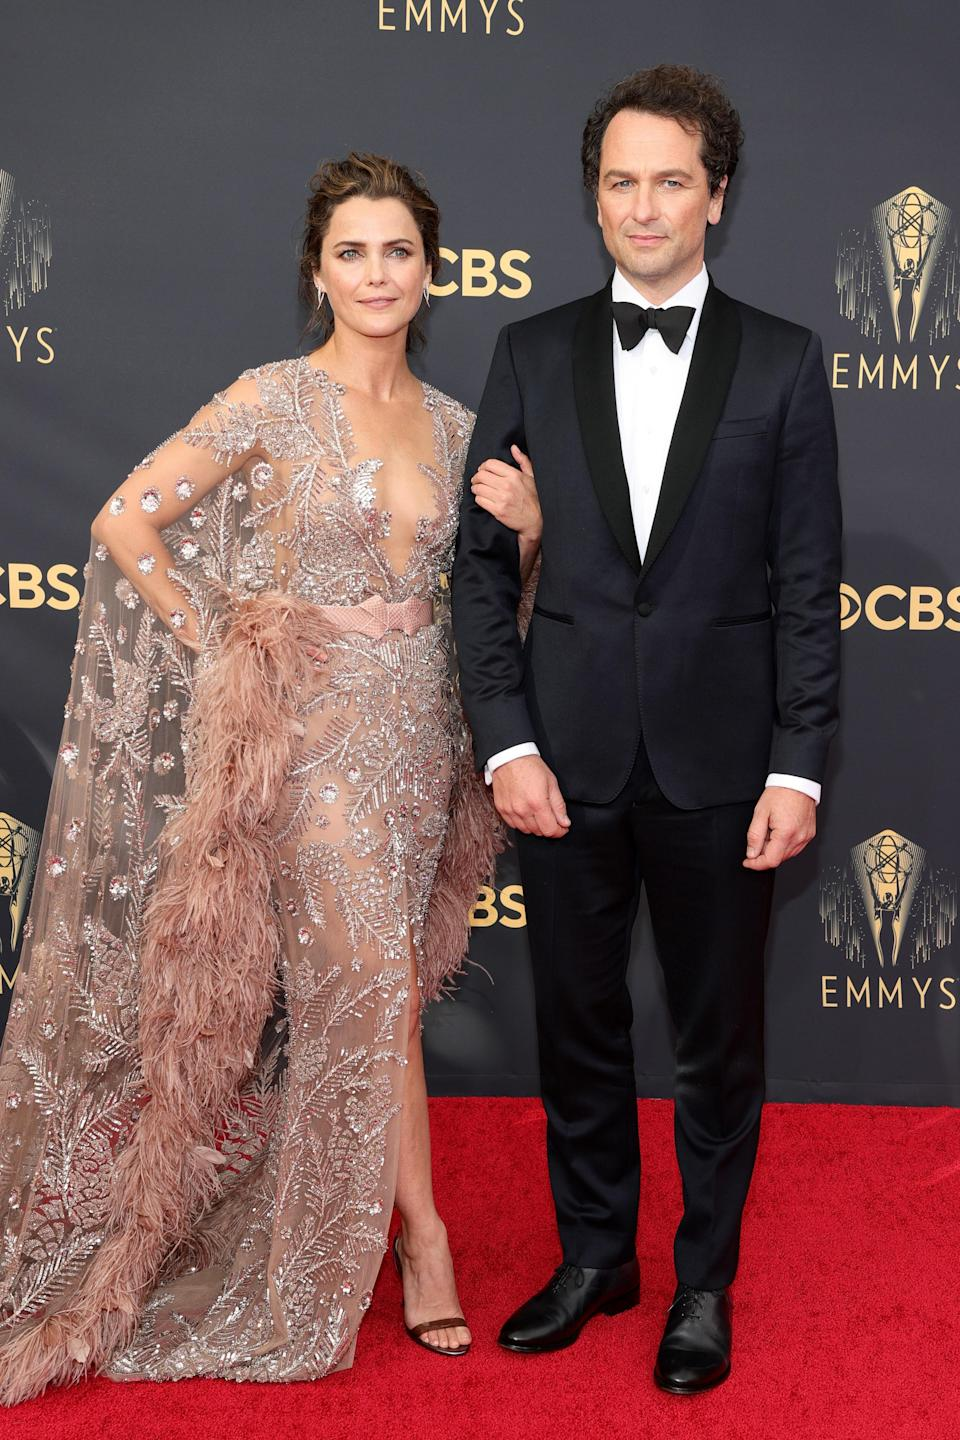 """<h1 class=""""title"""">Keri Russell in Zuhair Murad Couture and Matthew Rhys</h1><cite class=""""credit"""">Photo: Getty Images</cite>"""